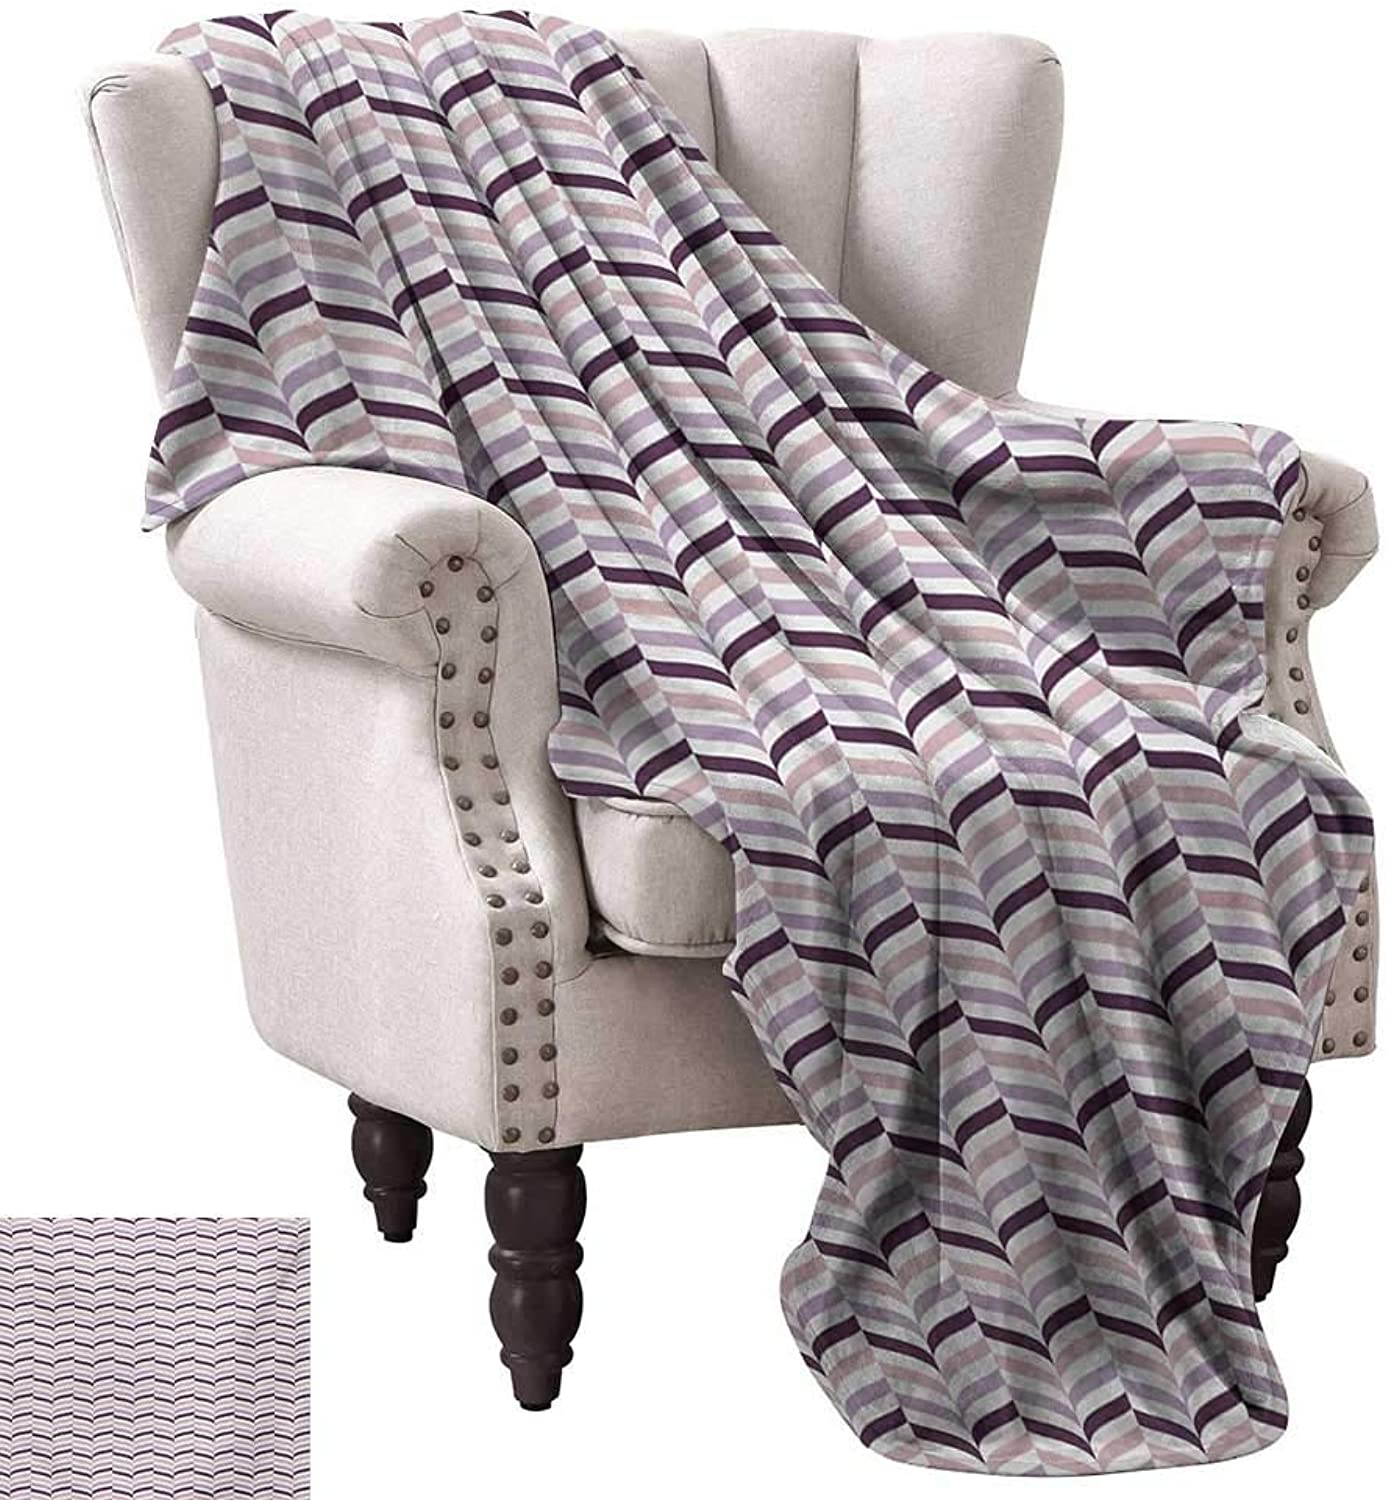 WinfreyDecor Eggplant Reversible Blanket Sea Whale Fish Tail Inspired Design with Leaf Like Details Art Anti-Static Throw 50  Wx60 L Pale Pink Purple and purplec